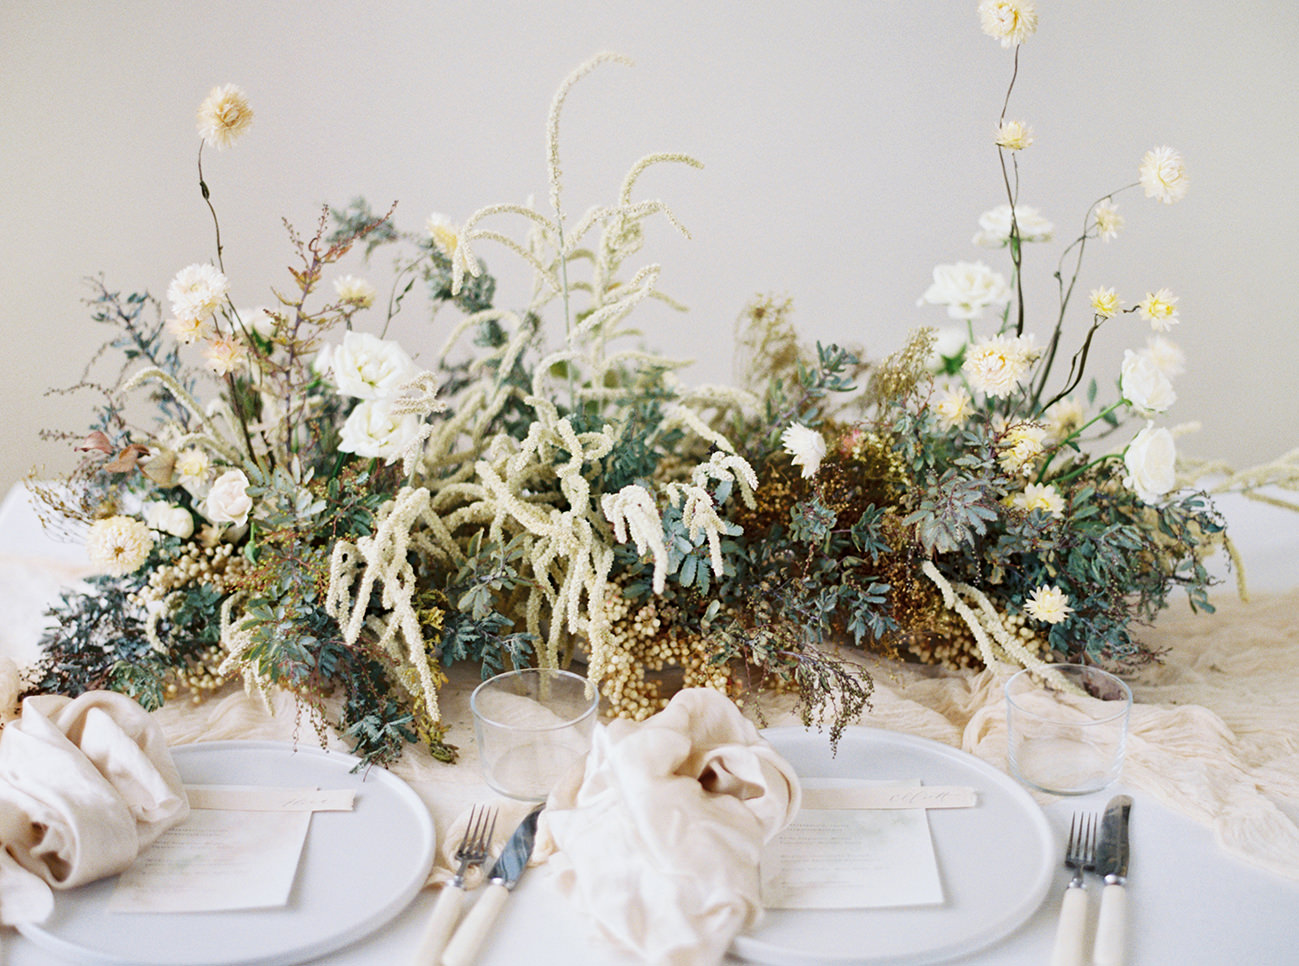 Bridal Inspiration, Wedding Bouquet, Hääkuvaus, Film Wedding Photographer, Table Setting Inspiration, Stationery, Dried Flowers, www.nordandmae.com, www.susannanordvall (34).jpg